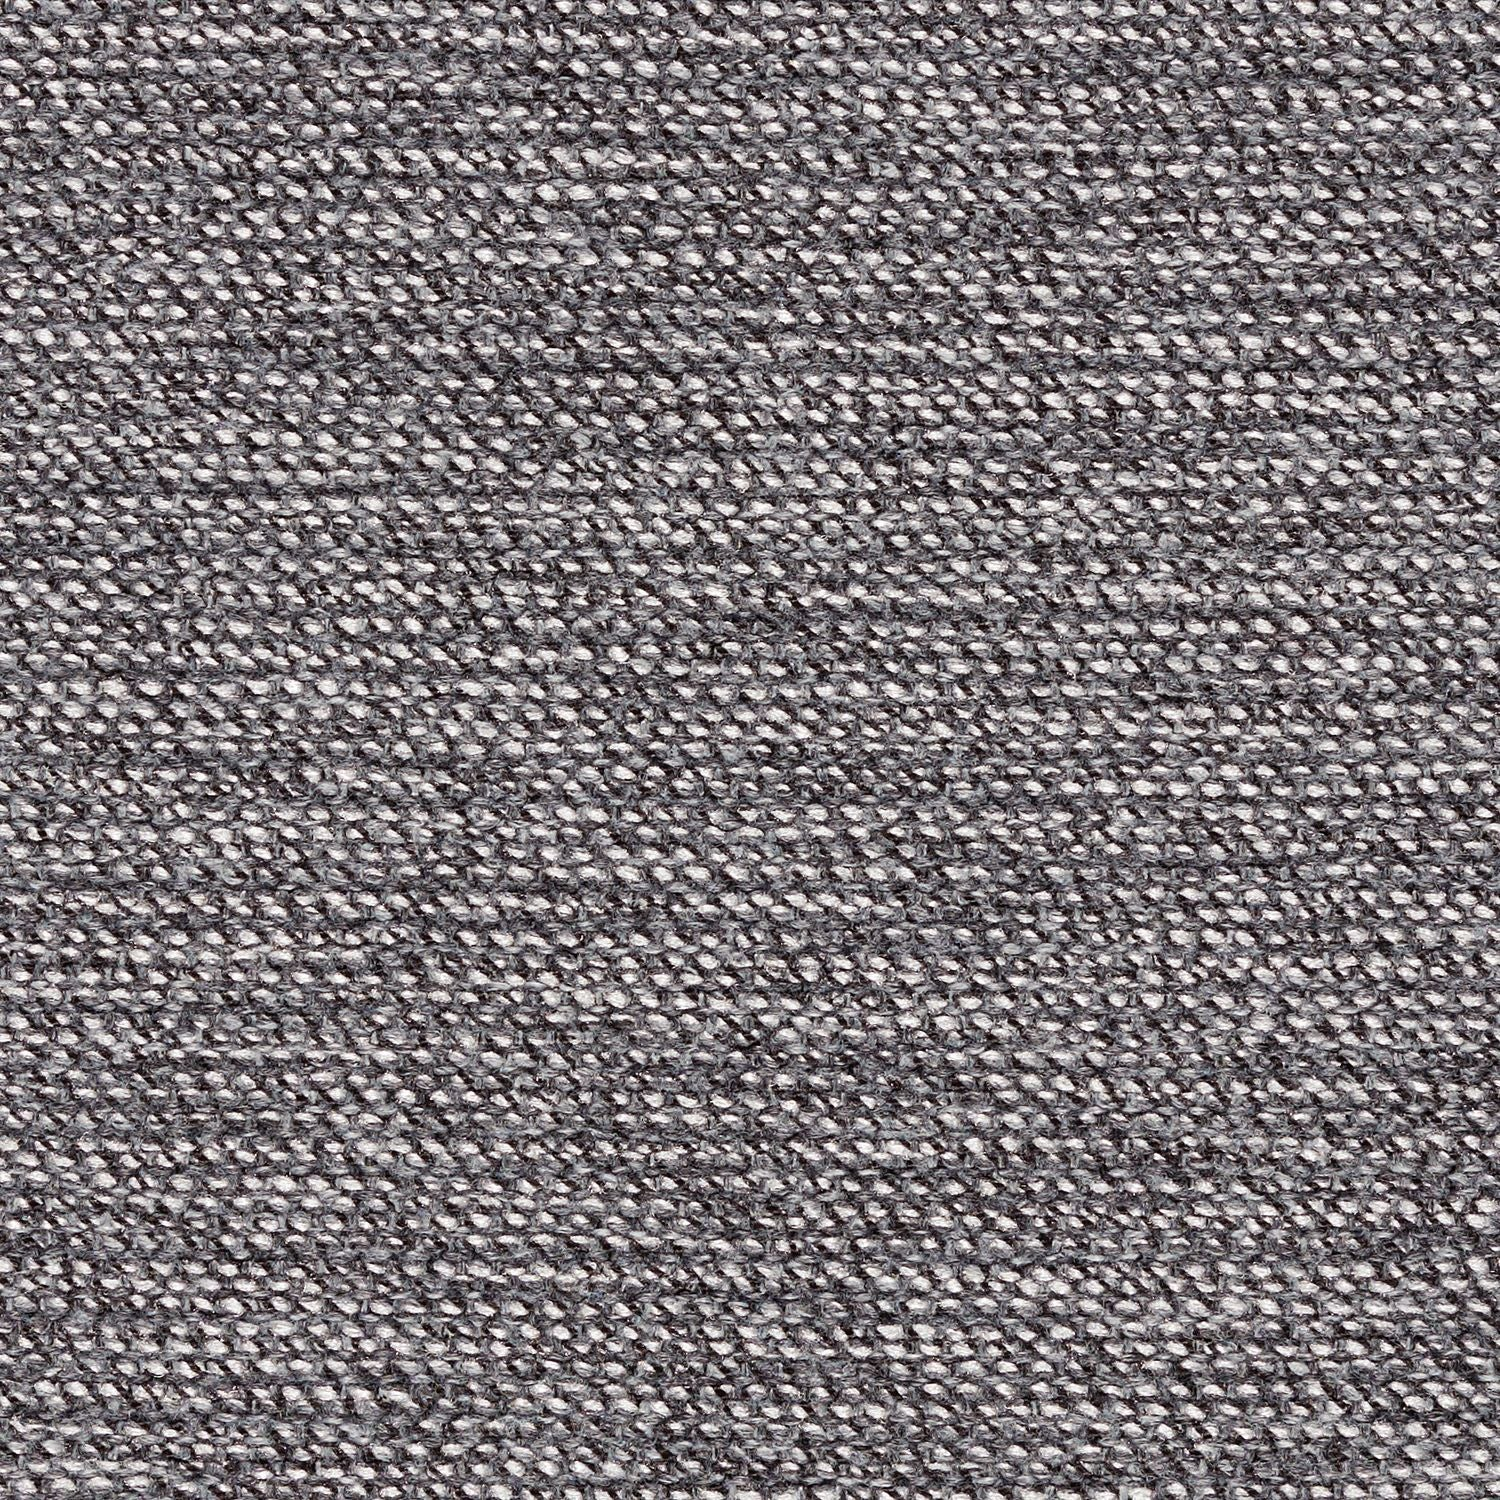 Superspun - Tensile - 4064 - 03